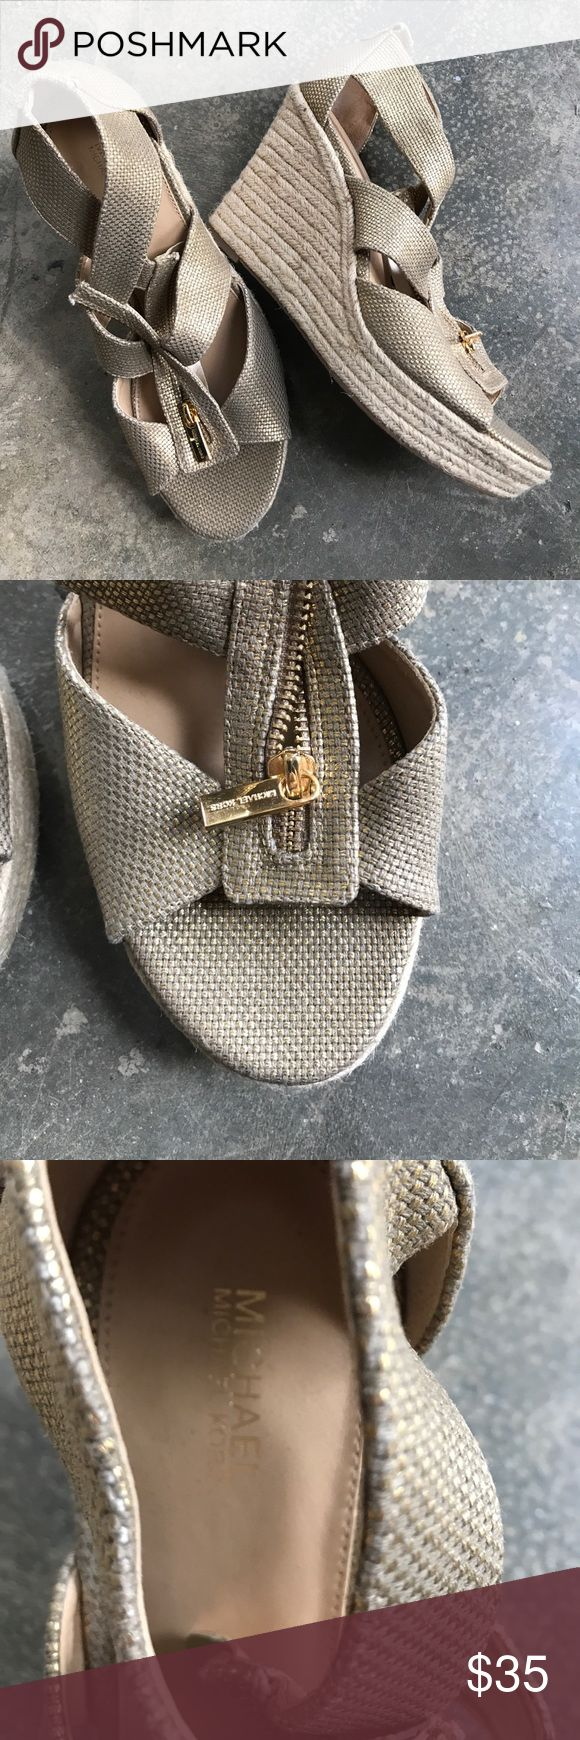 """Michael Michael Kors Metallic wedge heels 9.5 Store floor model- never worn with """"try-on"""" wear. Gold metallic zip up detail with rope wedge. Size 9.5. Heel is 4"""" with total height of 7"""" - box not included minor wear MICHAEL Michael Kors Shoes Wedges"""